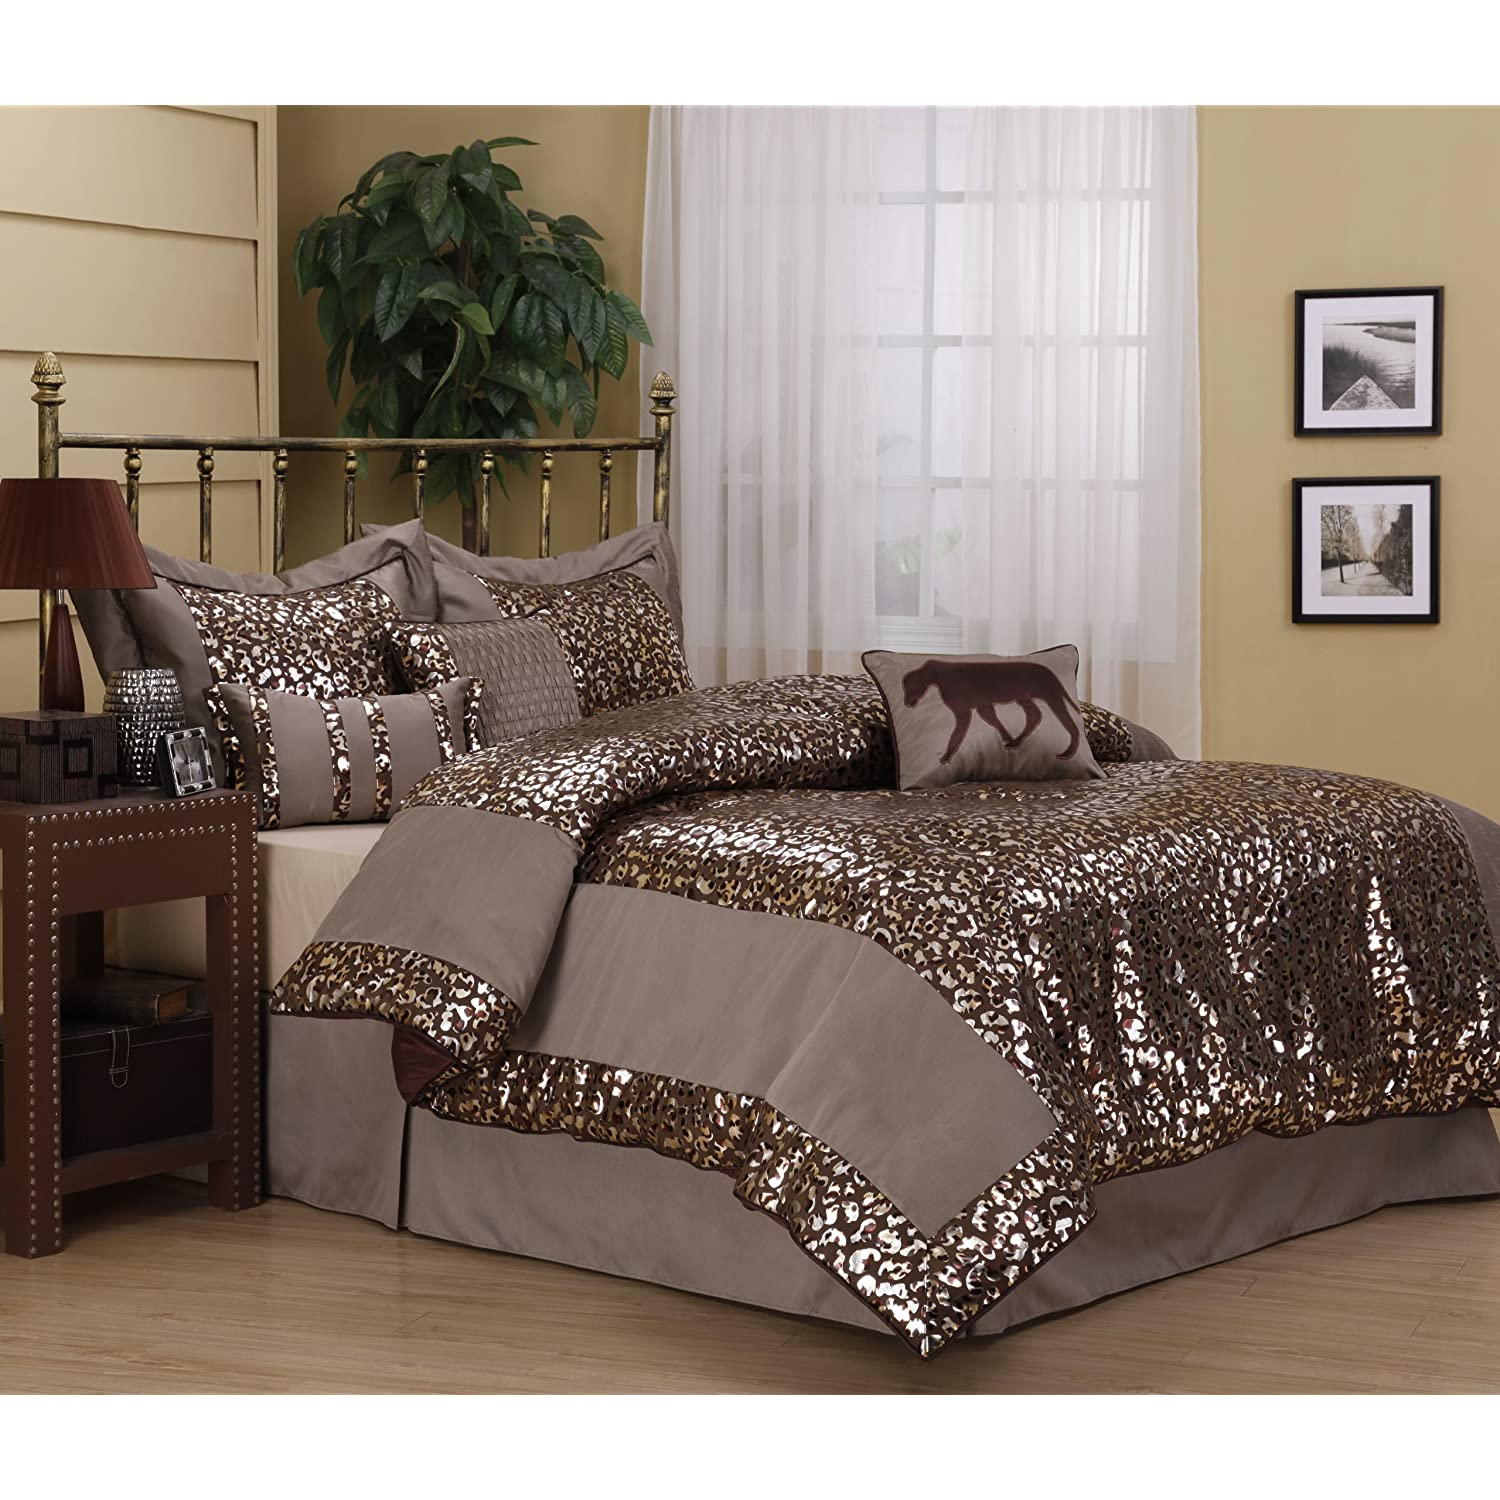 ideas page faux comforter sheepskin fy fur comforters beautiful rug of part sets grace queen floor for decor l